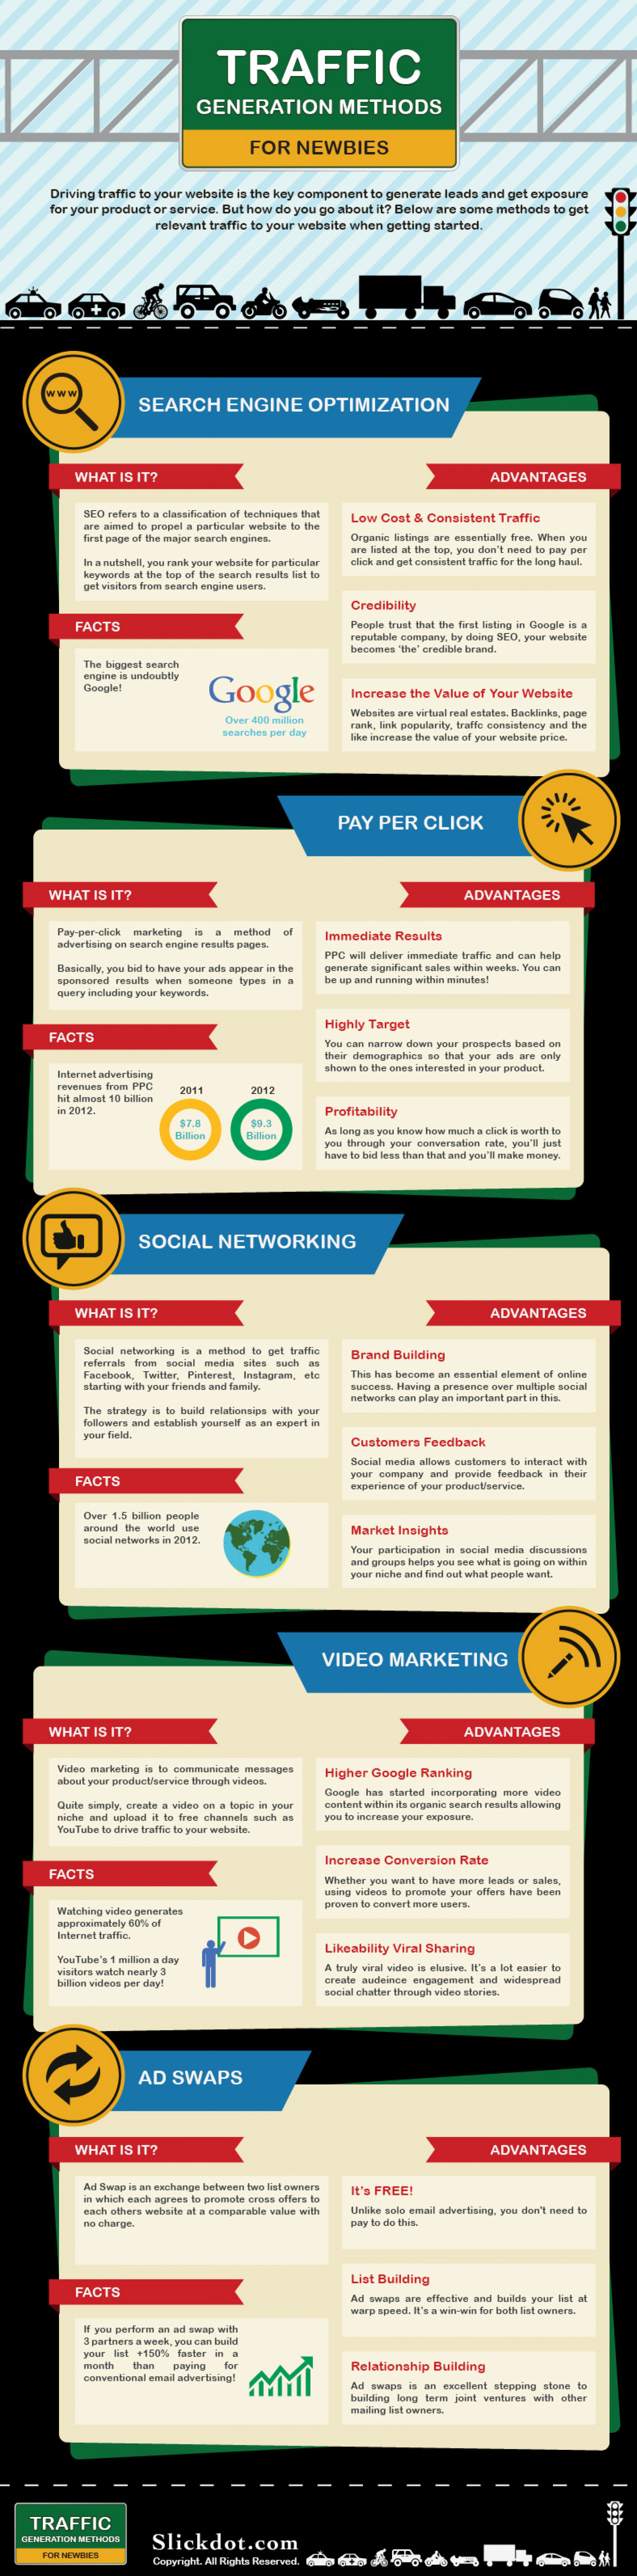 Traffic Generation Methods for Newbies Infographic